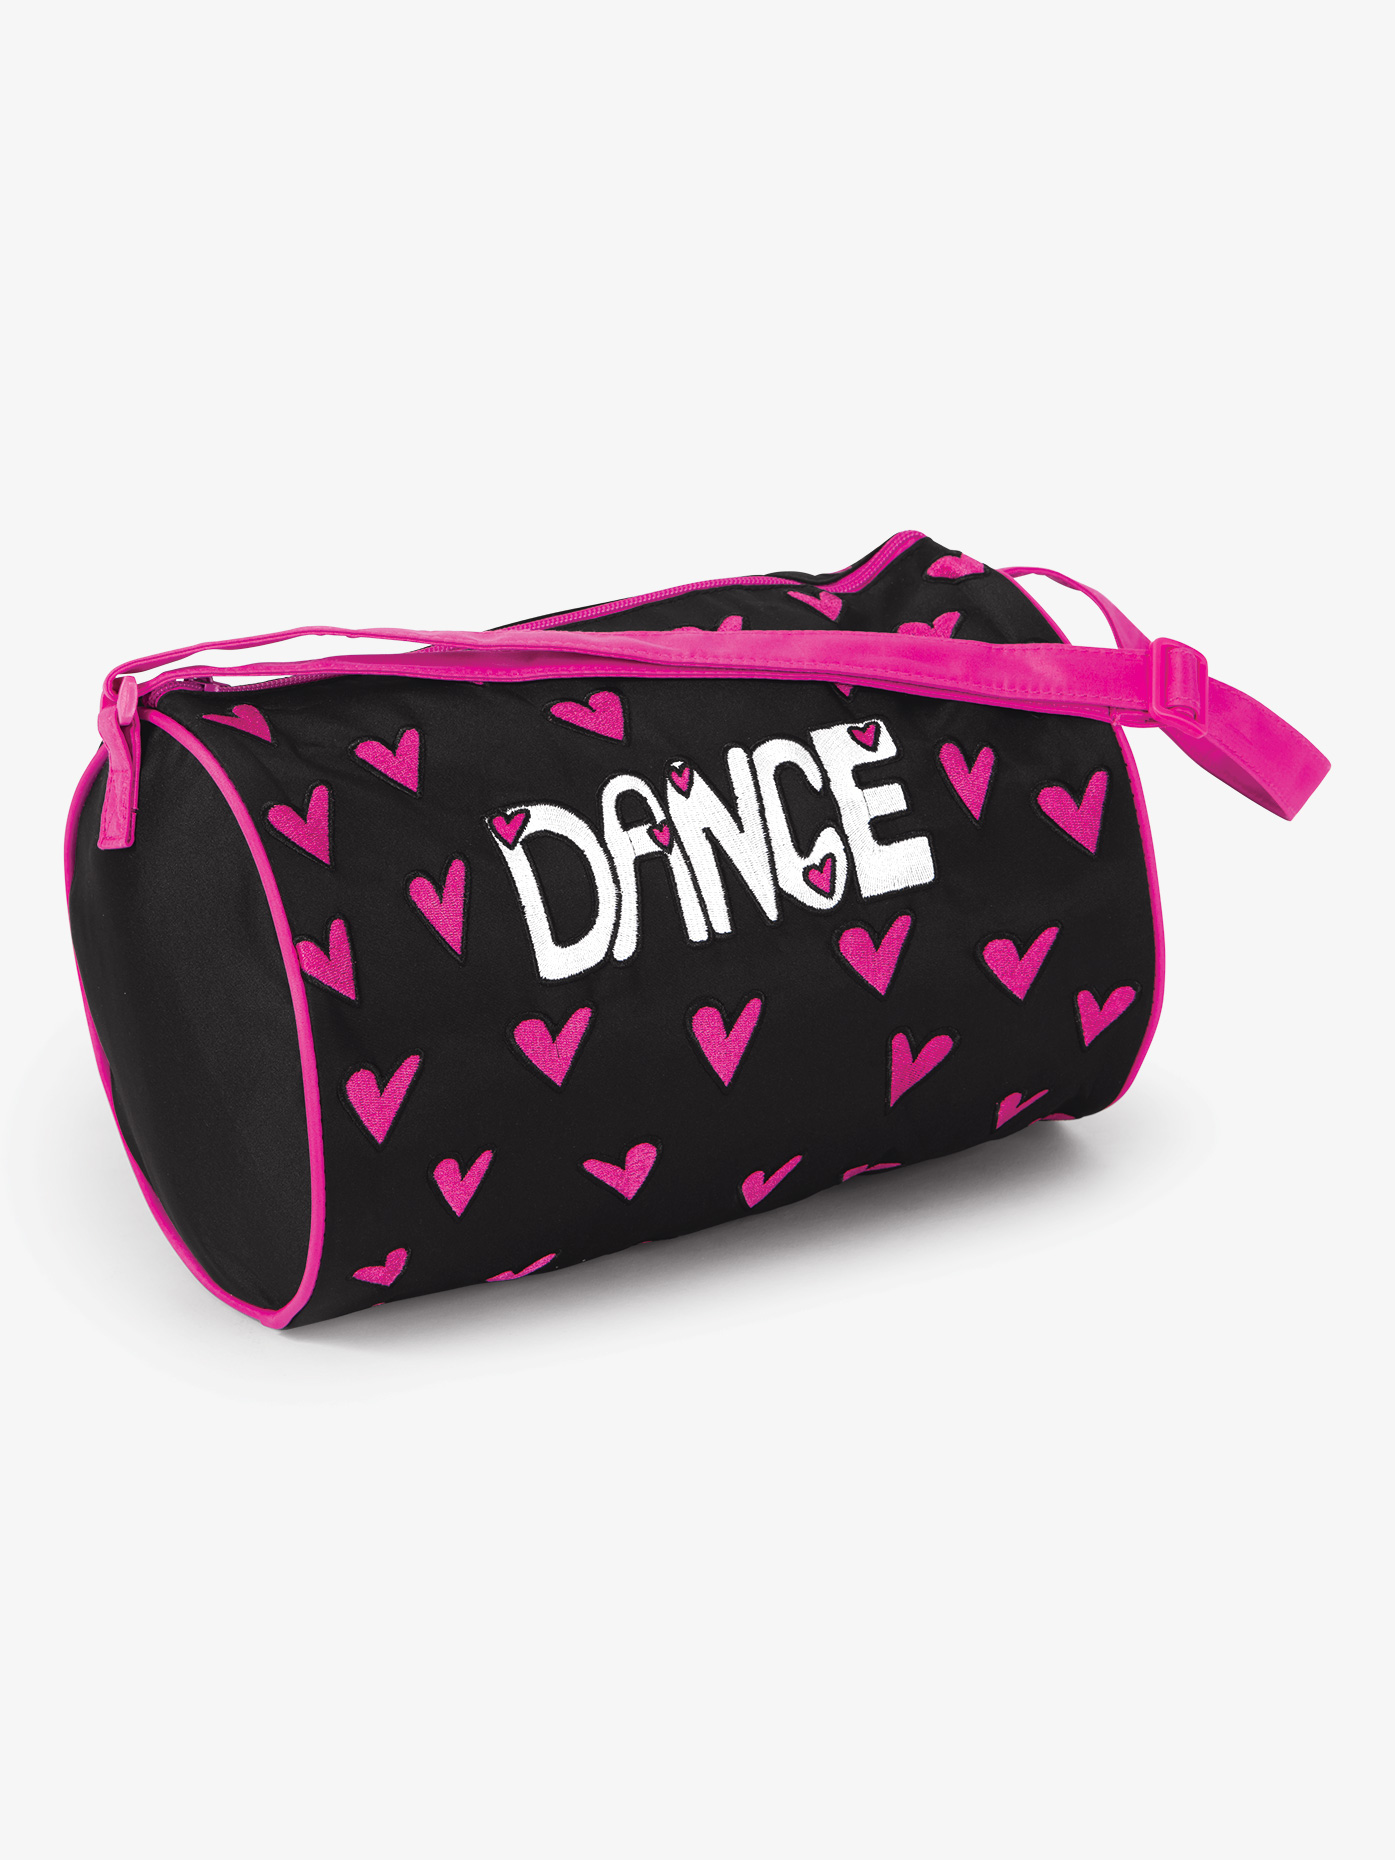 DansBagz Hearts For Dance Duffel Bag B965